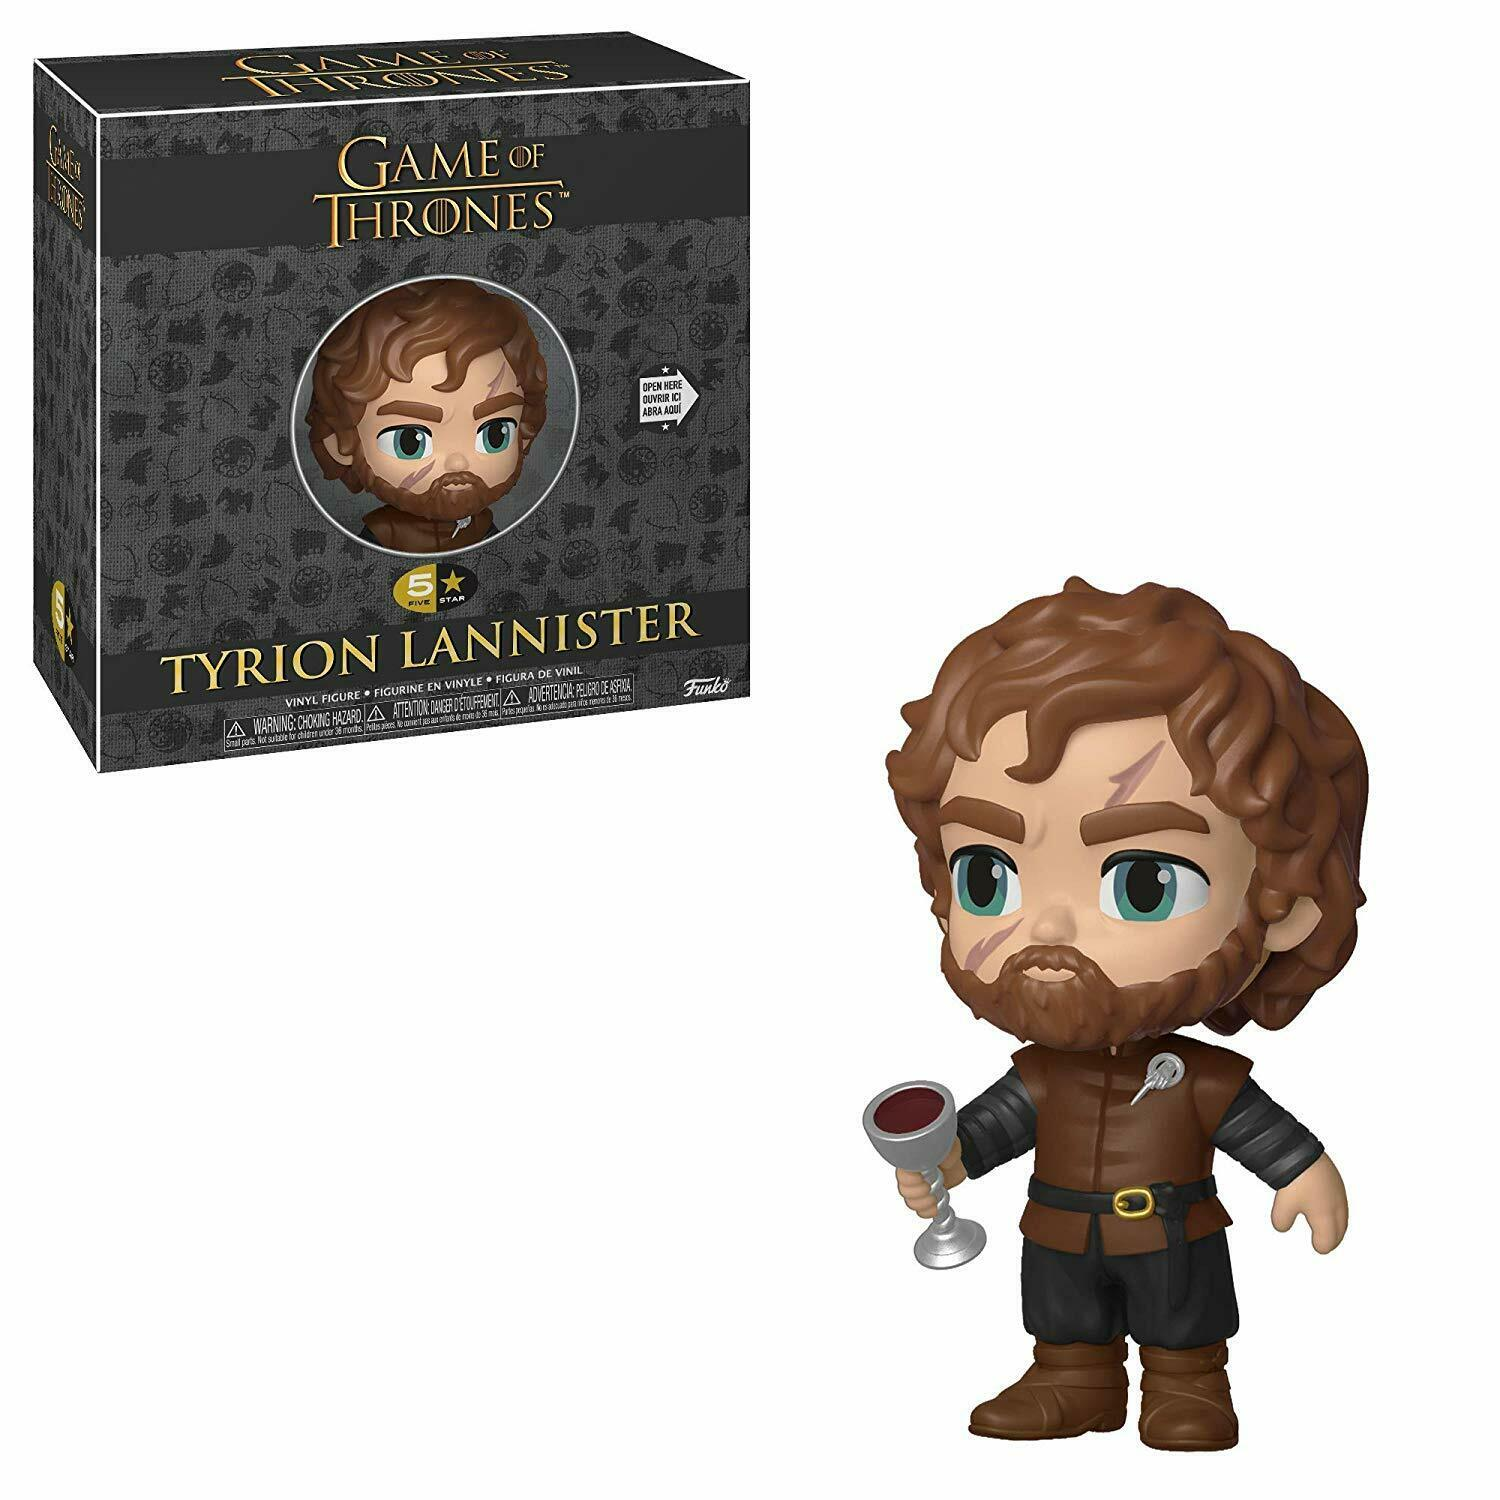 Funko Boneco Tyrion Lannister: Game of Thrones (5 Star) - Funko